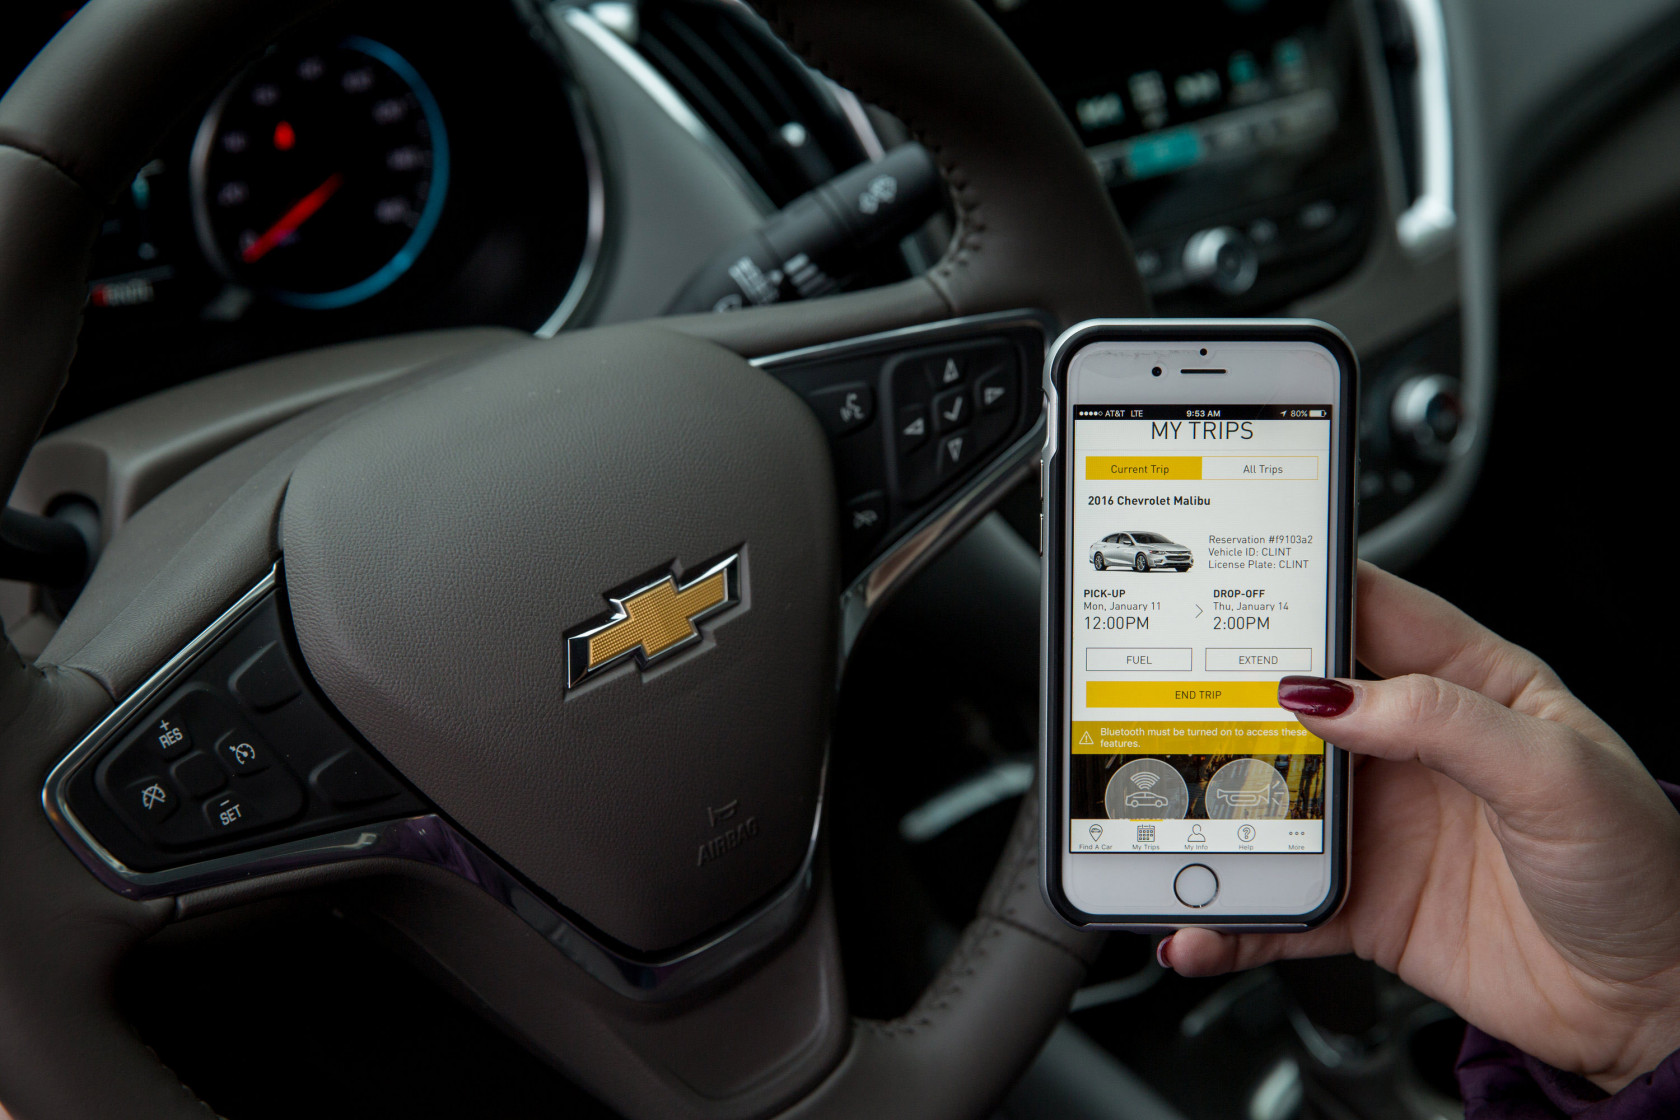 GM Planning A Turo Competitor With Customer-Owned Vehicles